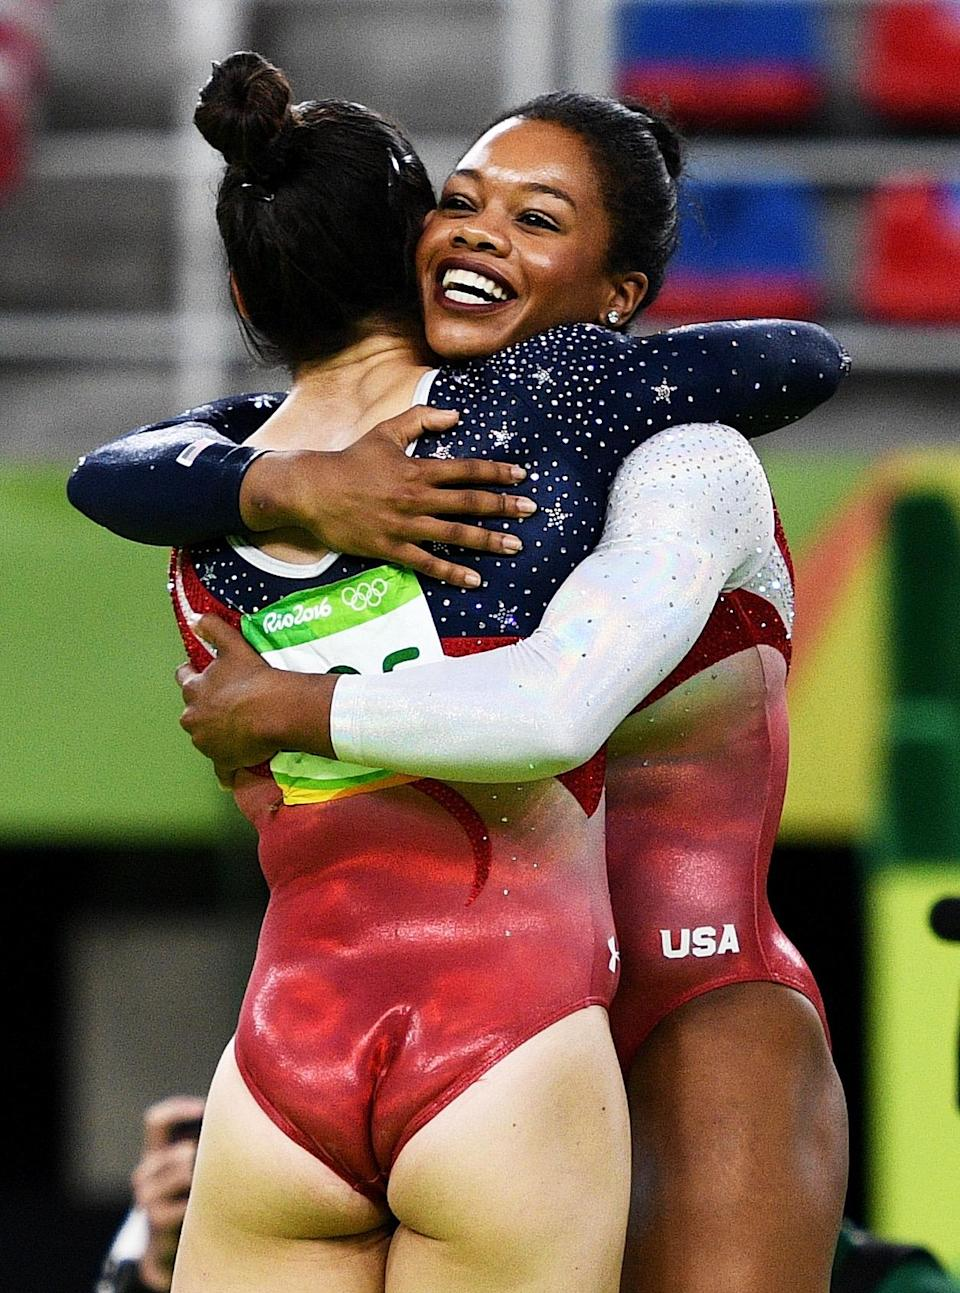 <p>Alexandra Raisman (L) and Gabrielle Douglas (R) of the United States celebrate winning the gold medal during the Artistic Gymnastics Women's Team Final on Day 4 of the Rio 2016 Olympic Games at the Rio Olympic Arena on August 9, 2016 in Rio de Janeiro, Brazil. (Photo by David Ramos/Getty Images) </p>